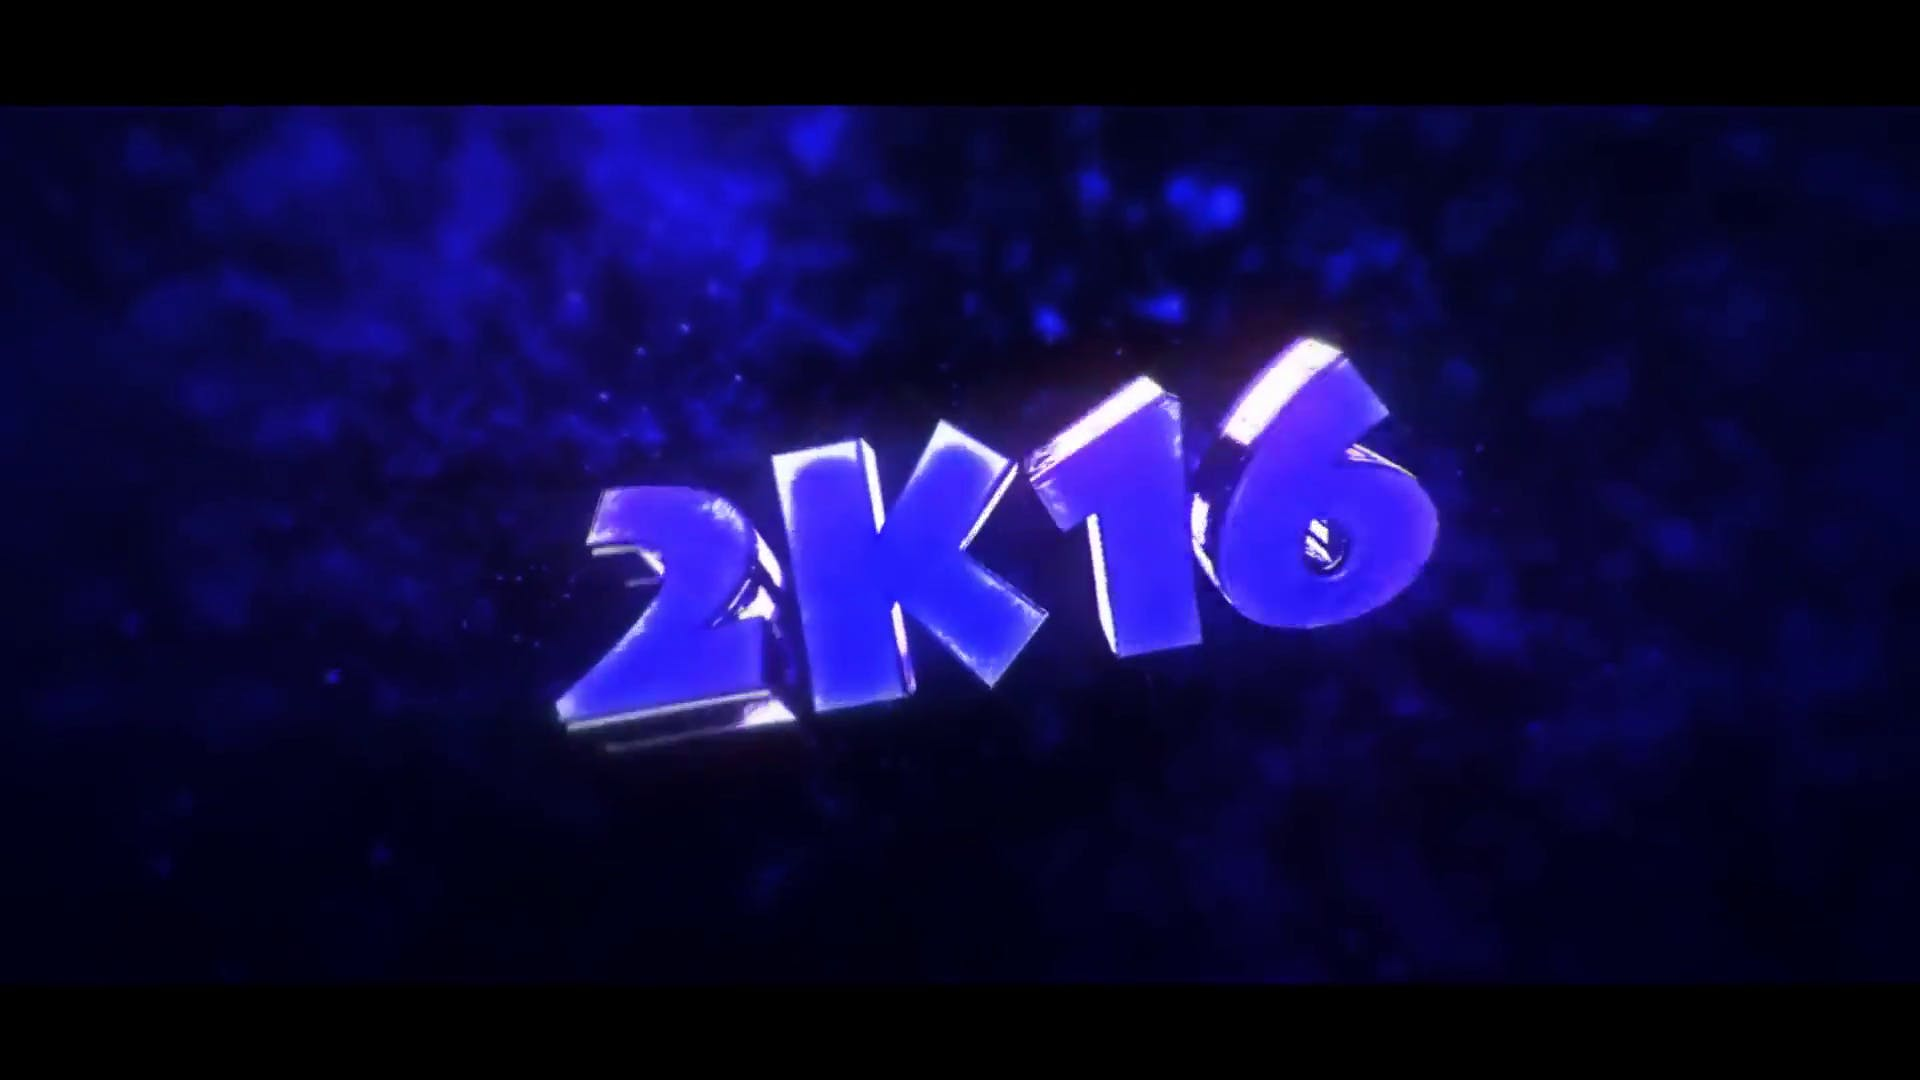 FREE Cinema 4D After Effects 2k16 2016 Intro Template